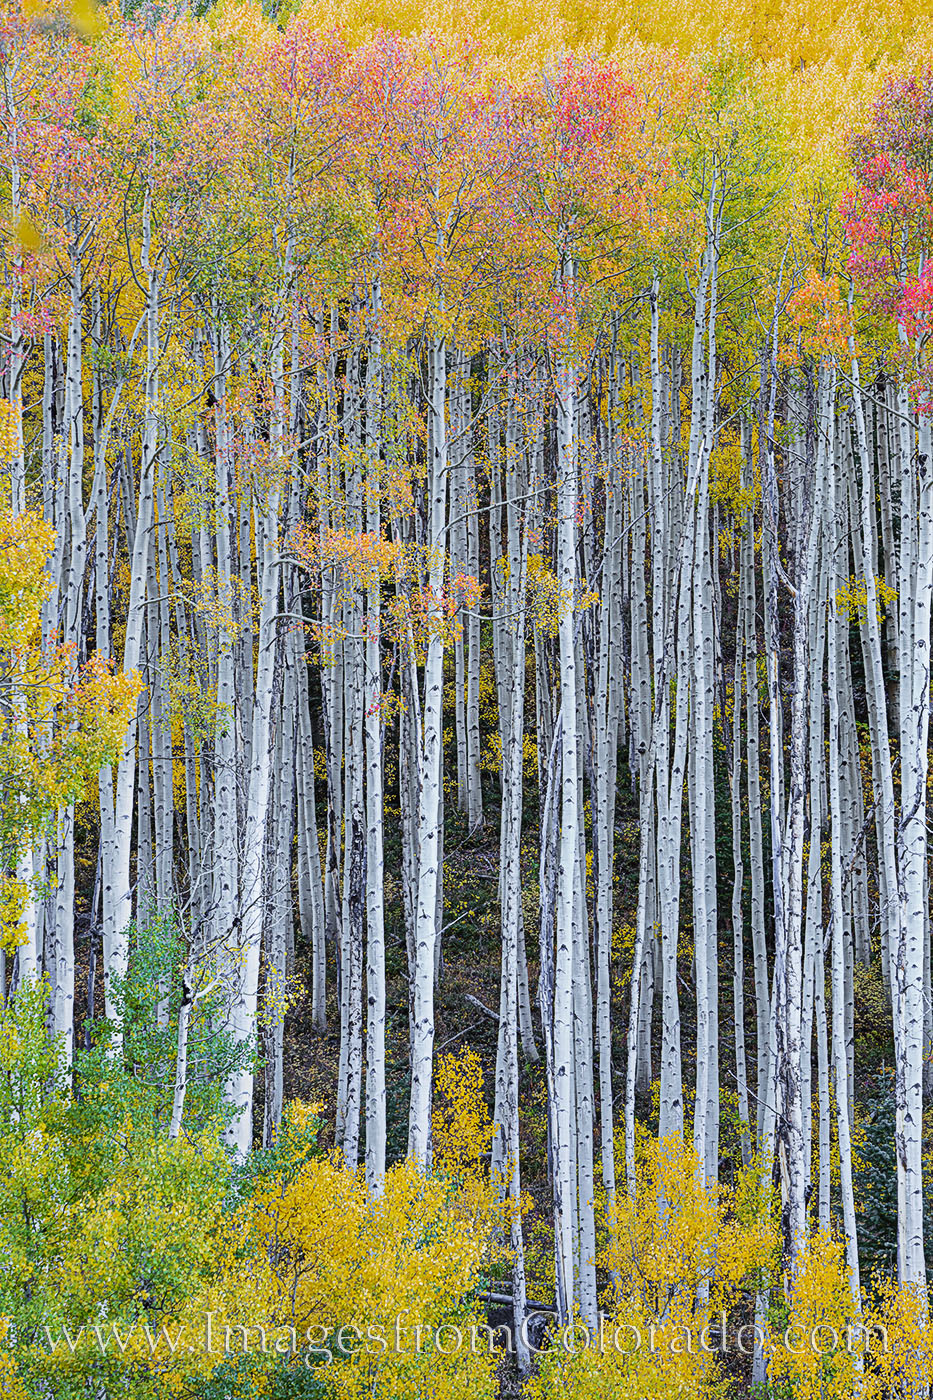 Pristine tree trunks of Aspen trees capped by gold and orange leaves show off the fall colors of the Maroon Bells Wilderness...